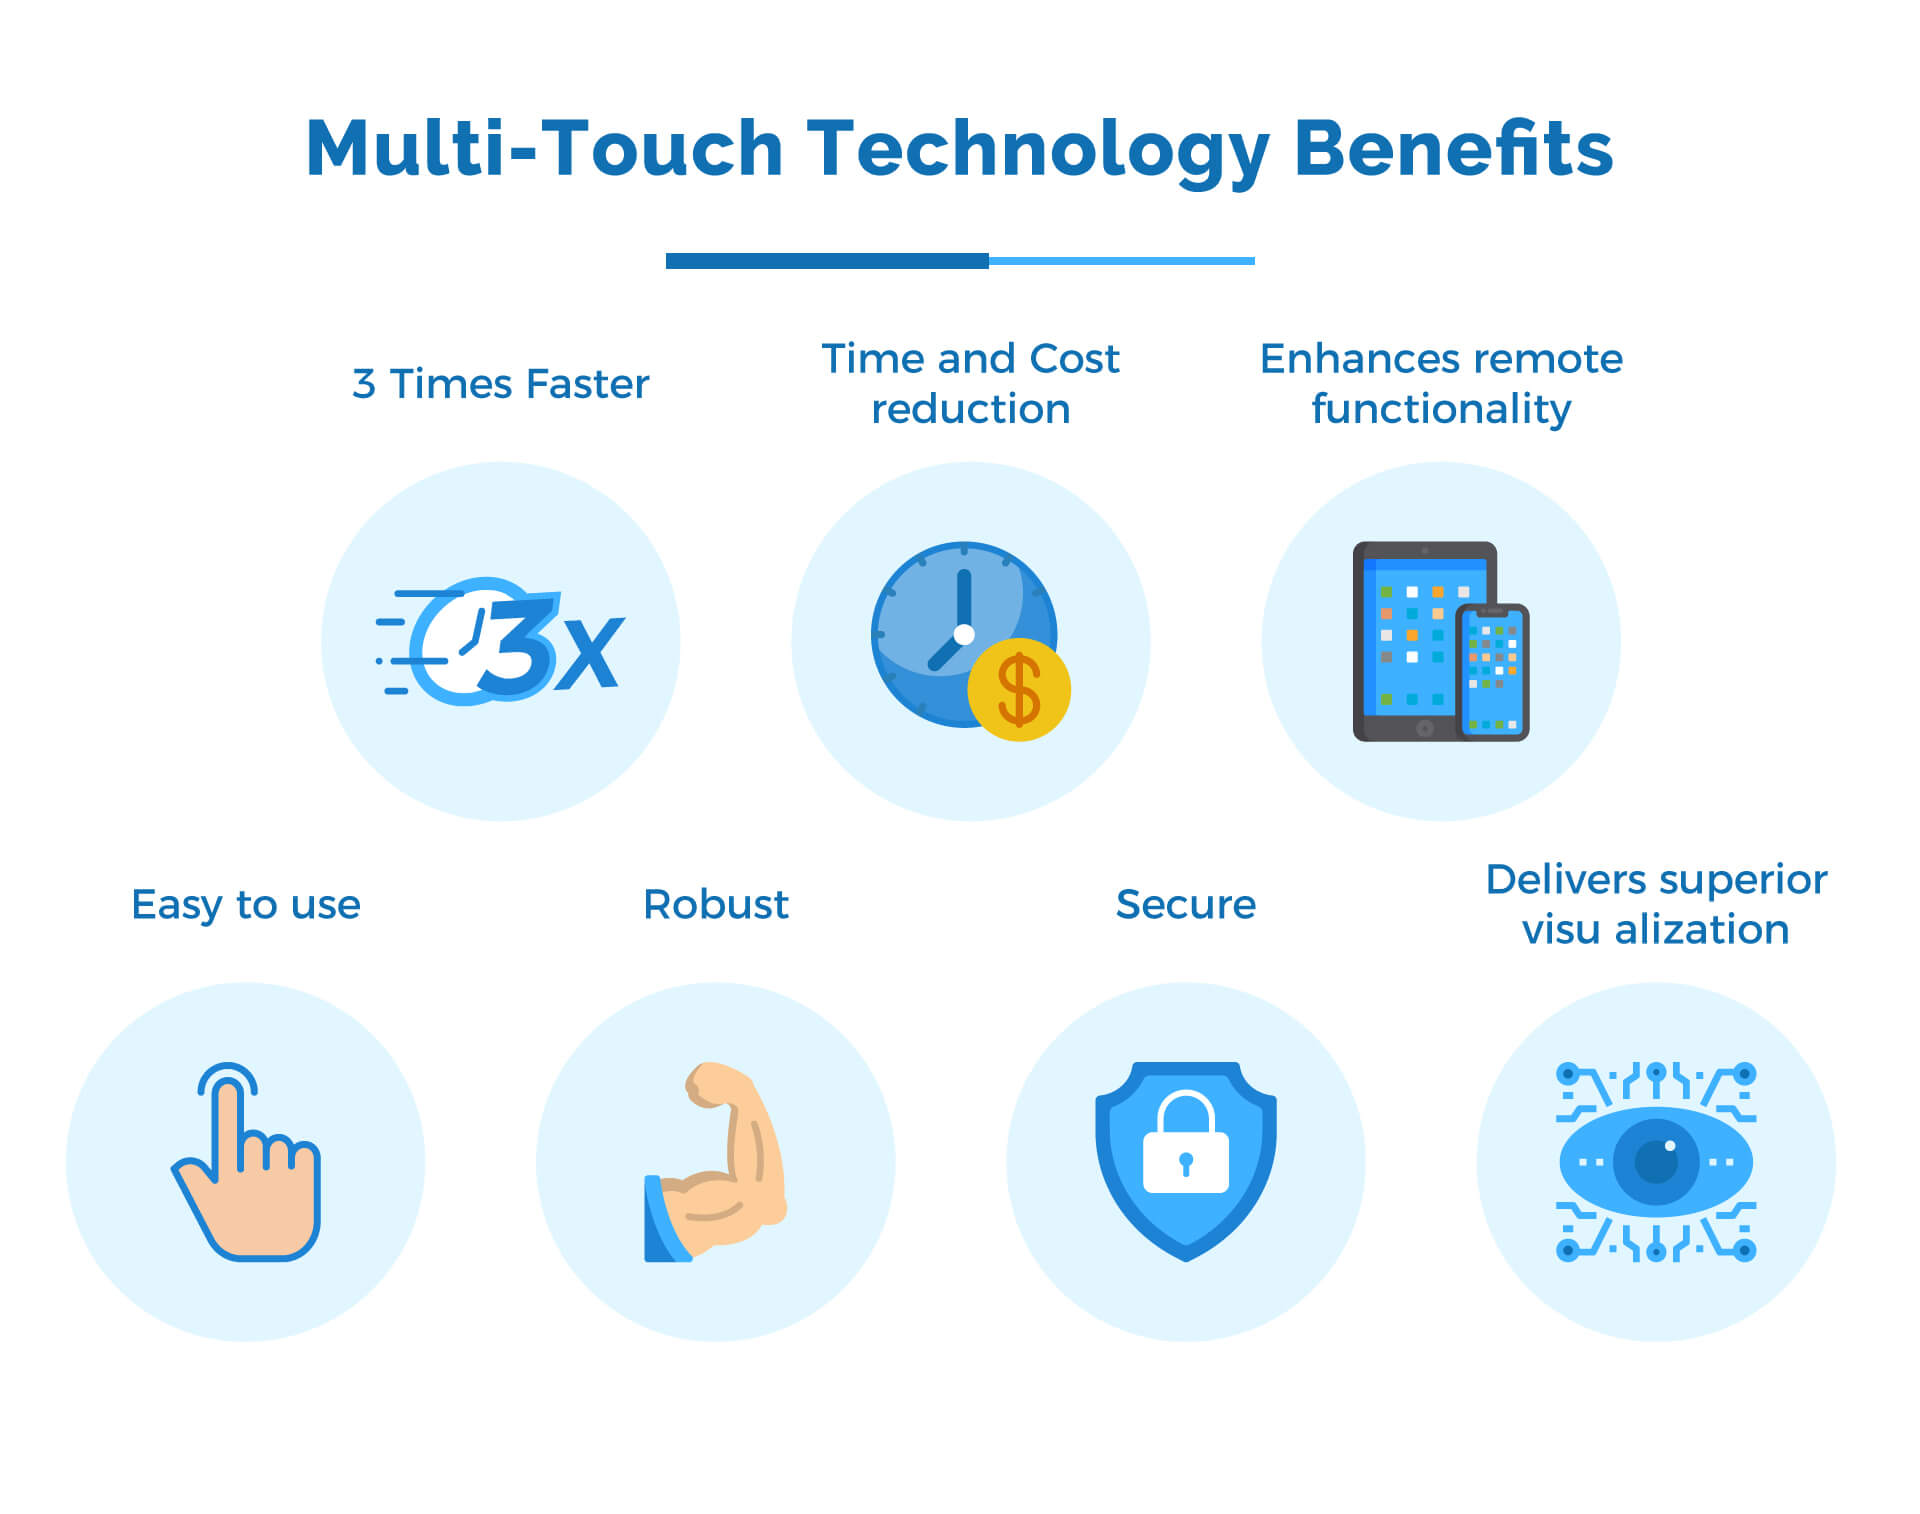 Multi touch Technology Benefits for Industries